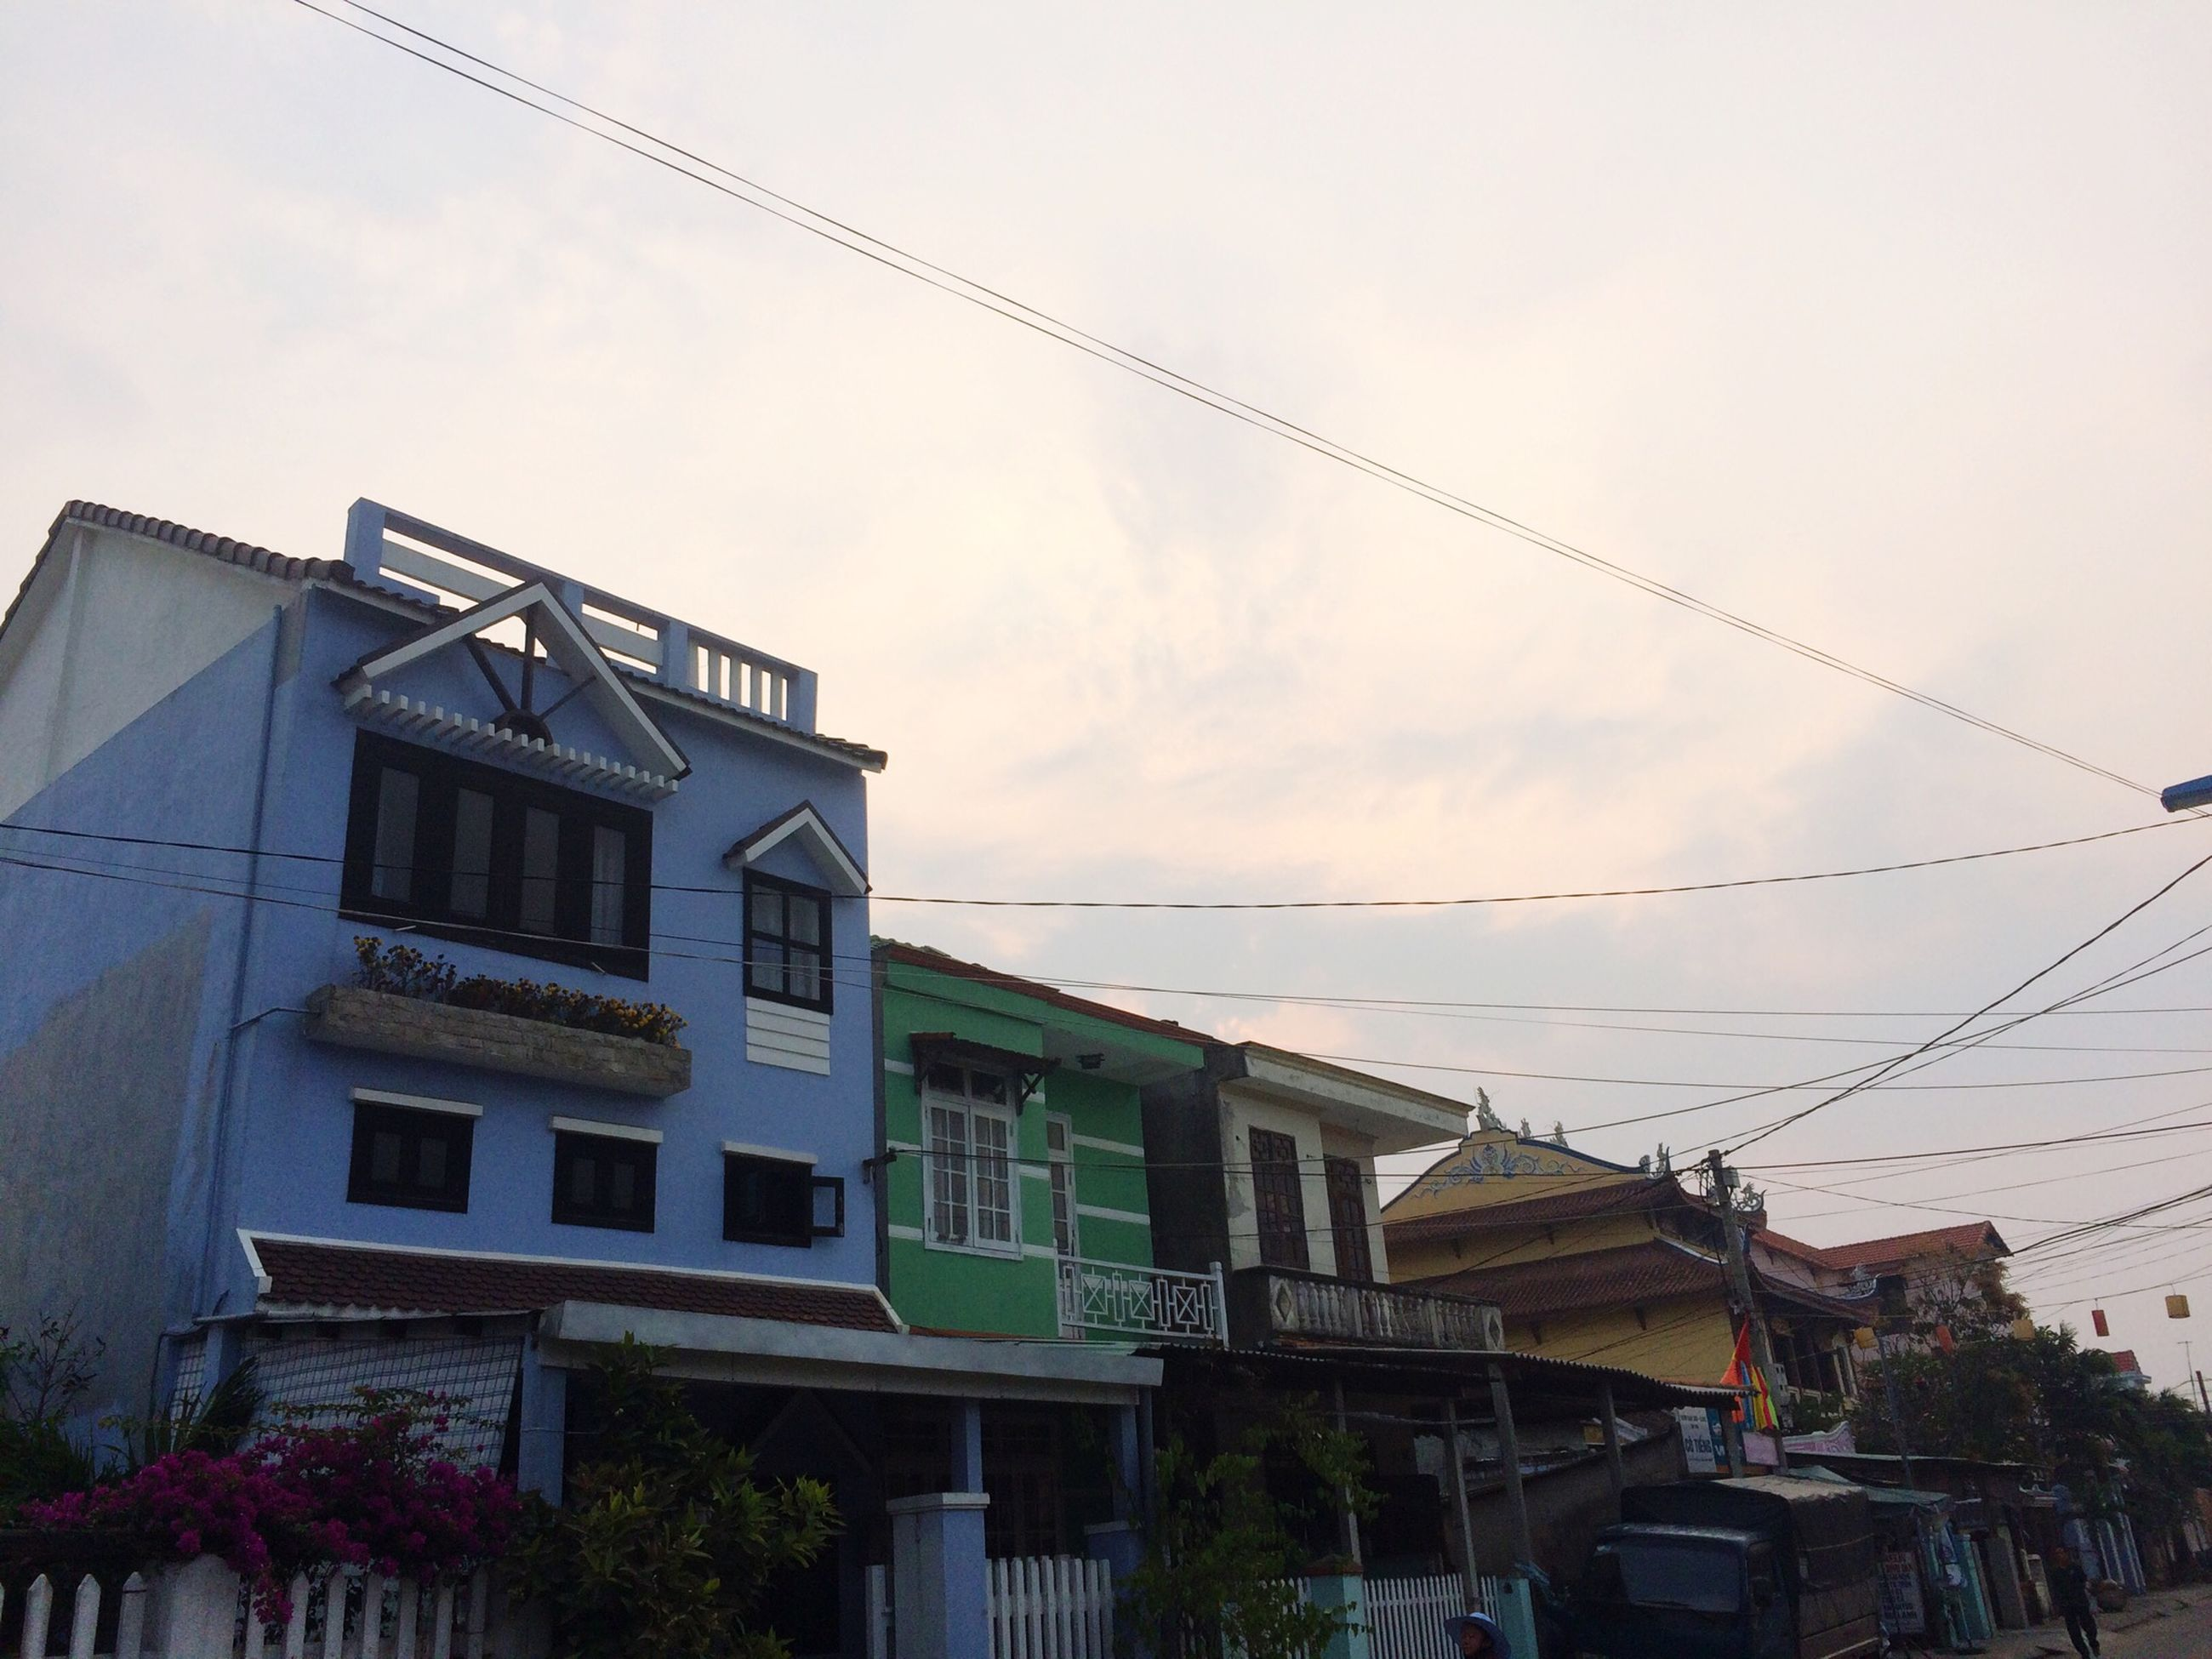 architecture, building exterior, built structure, low angle view, bird, sky, residential building, house, residential structure, building, roof, outdoors, animal themes, day, cable, no people, flying, city, power line, tree